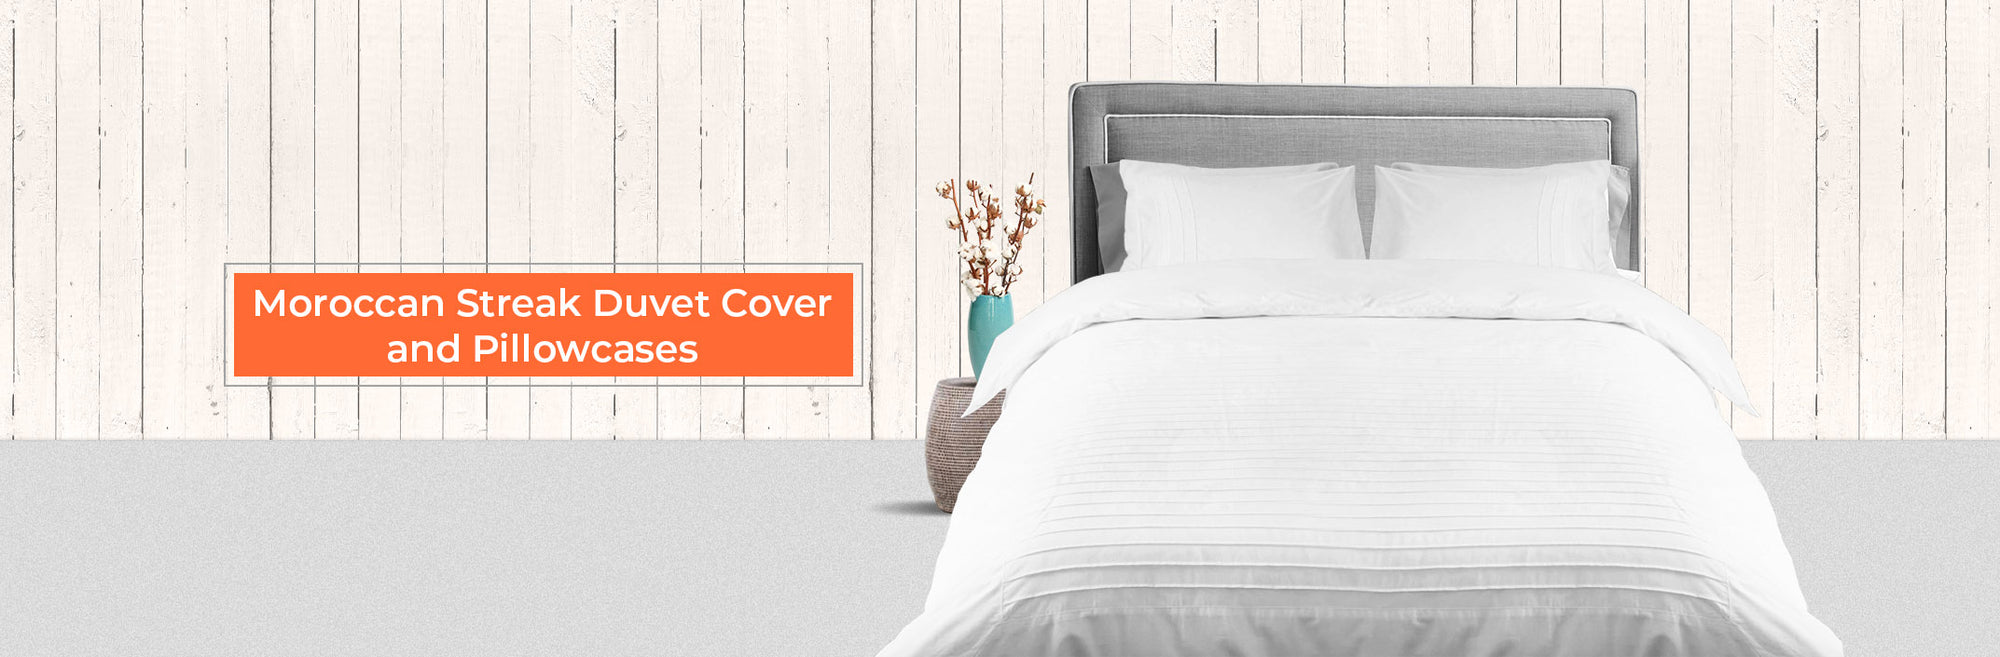 Moroccan Streak Duvet Cover And Pillow Cases